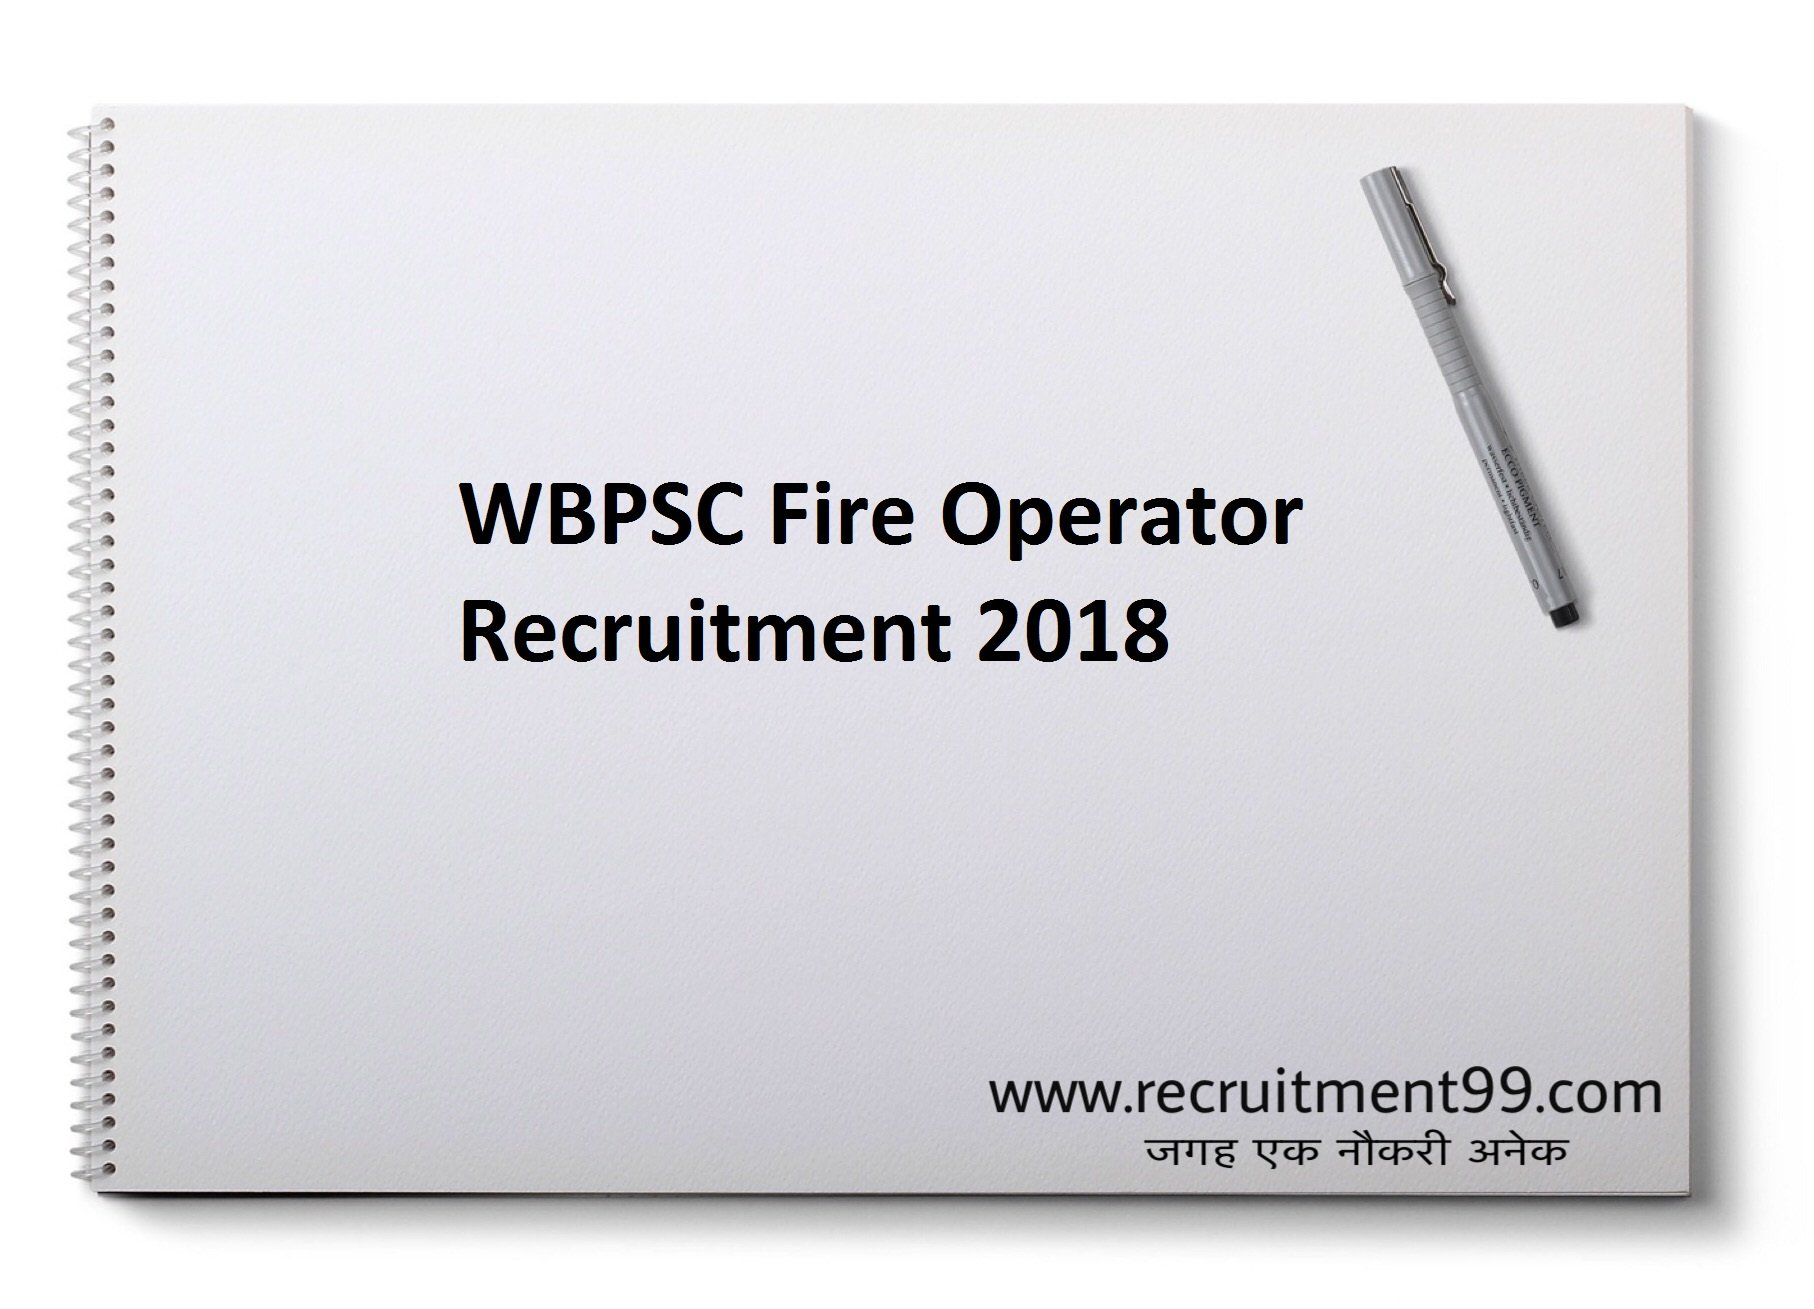 WBPSC Fire Operator Recruitment Admit Card Result 2018